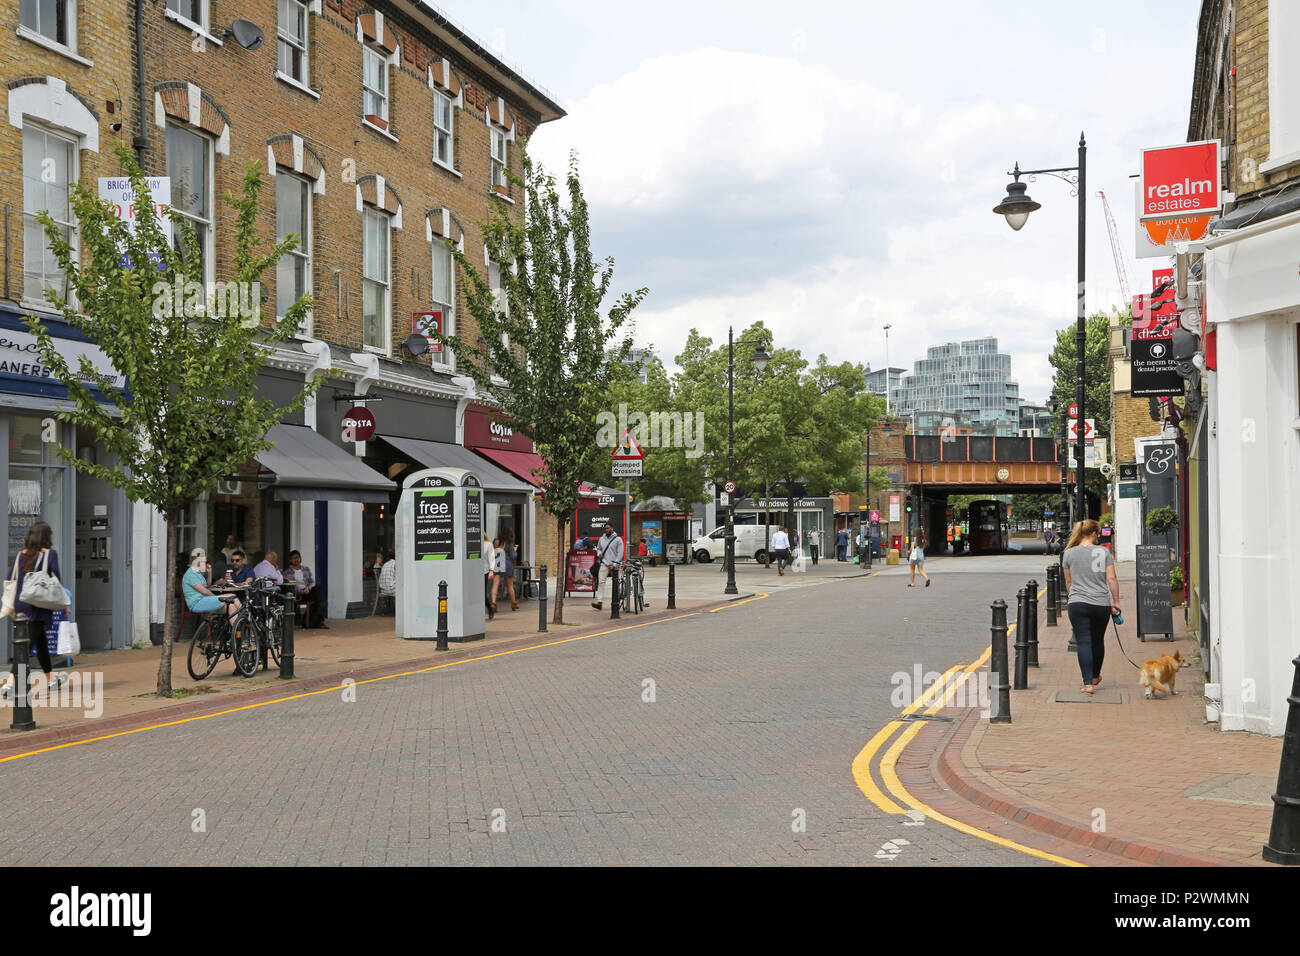 Local shops and cafes close to Wandsworth Town rail station, a fashionable area of southwest London, UK. Shows effective parking controls. - Stock Image